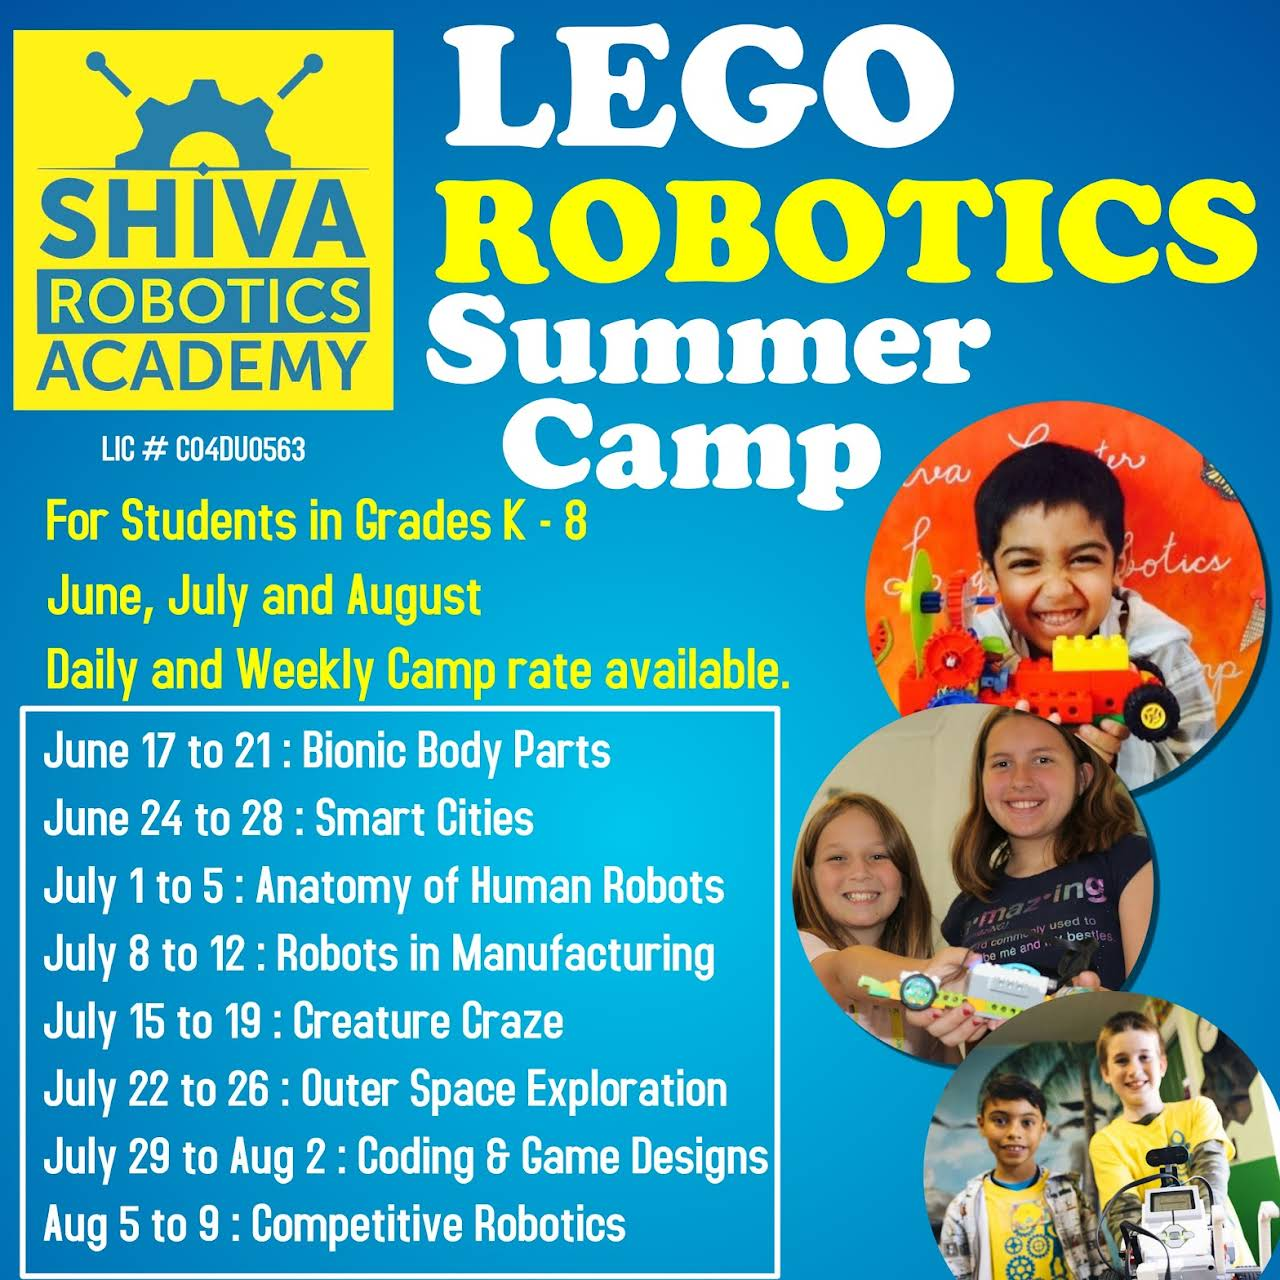 Shiva Robotics Academy - Educational Institution in Jacksonville